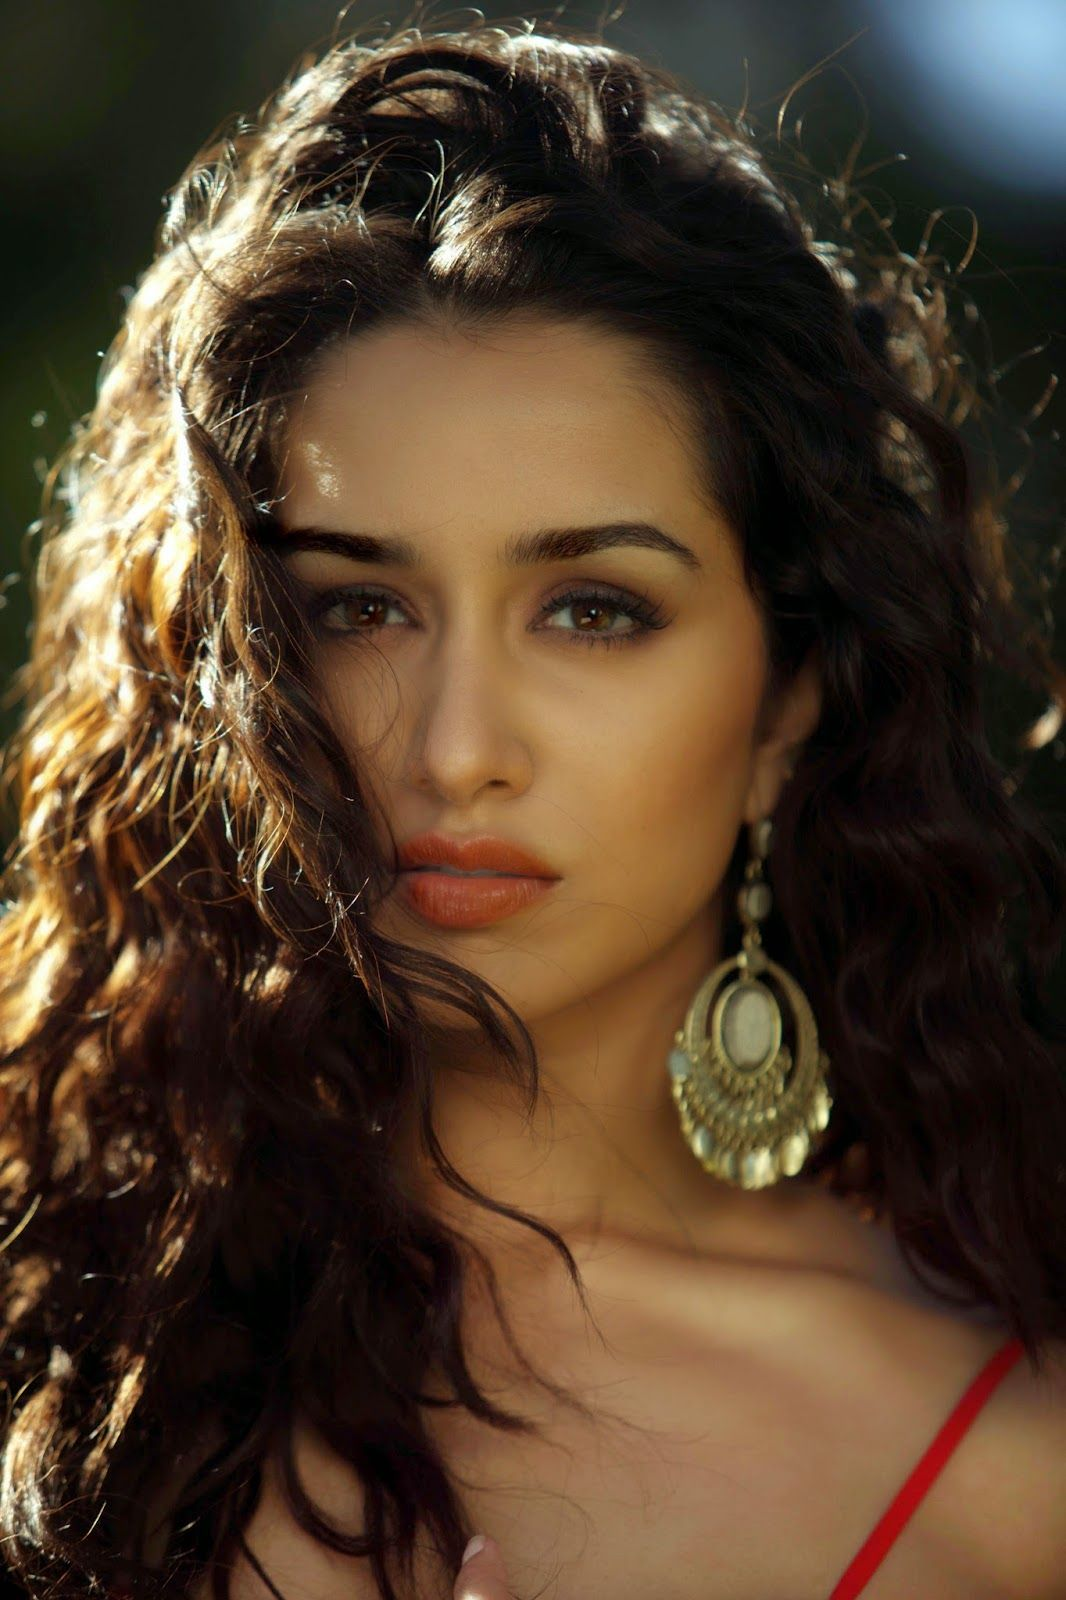 shraddha kapoor hd wallpapers | bollywood | pinterest | shraddha